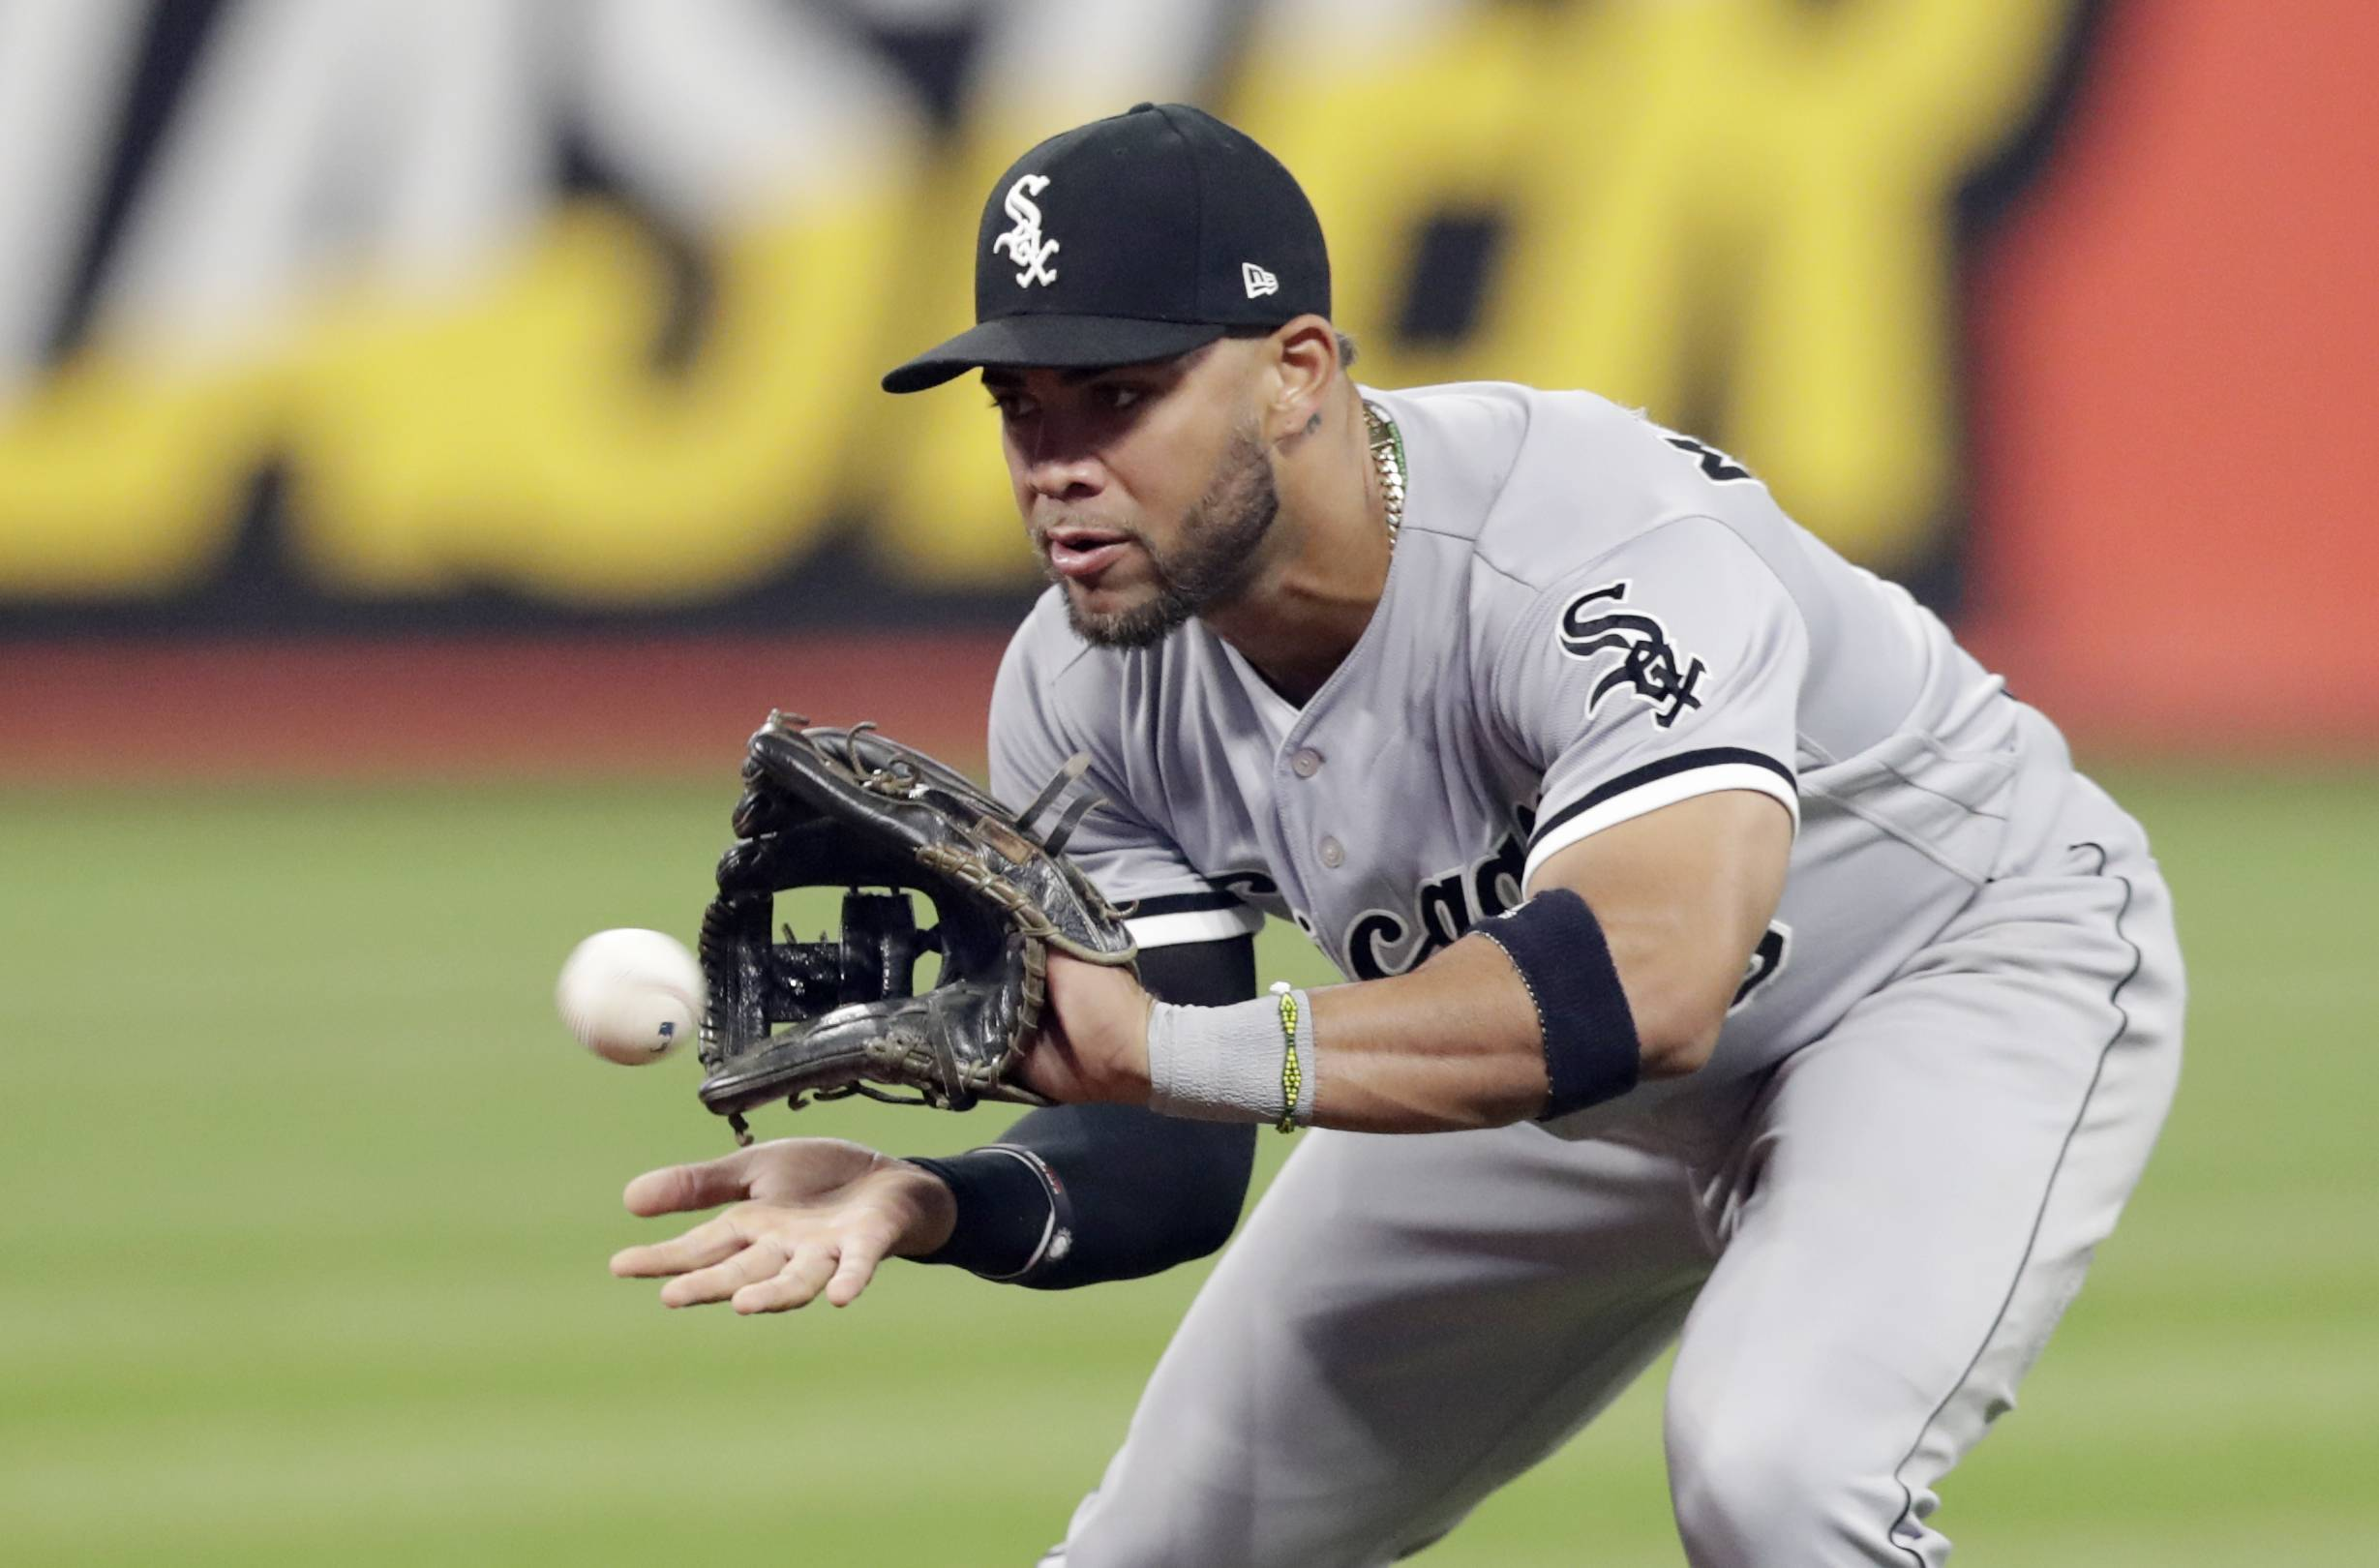 Chicago White Sox's Yoan Moncada fields a ball hit by Cleveland Indians' Melky Cabrera in the fourth inning of a baseball game, Wednesday, Sept. 19, 2018, in Cleveland. Cabrera was out on the play. (AP Photo/Tony Dejak)